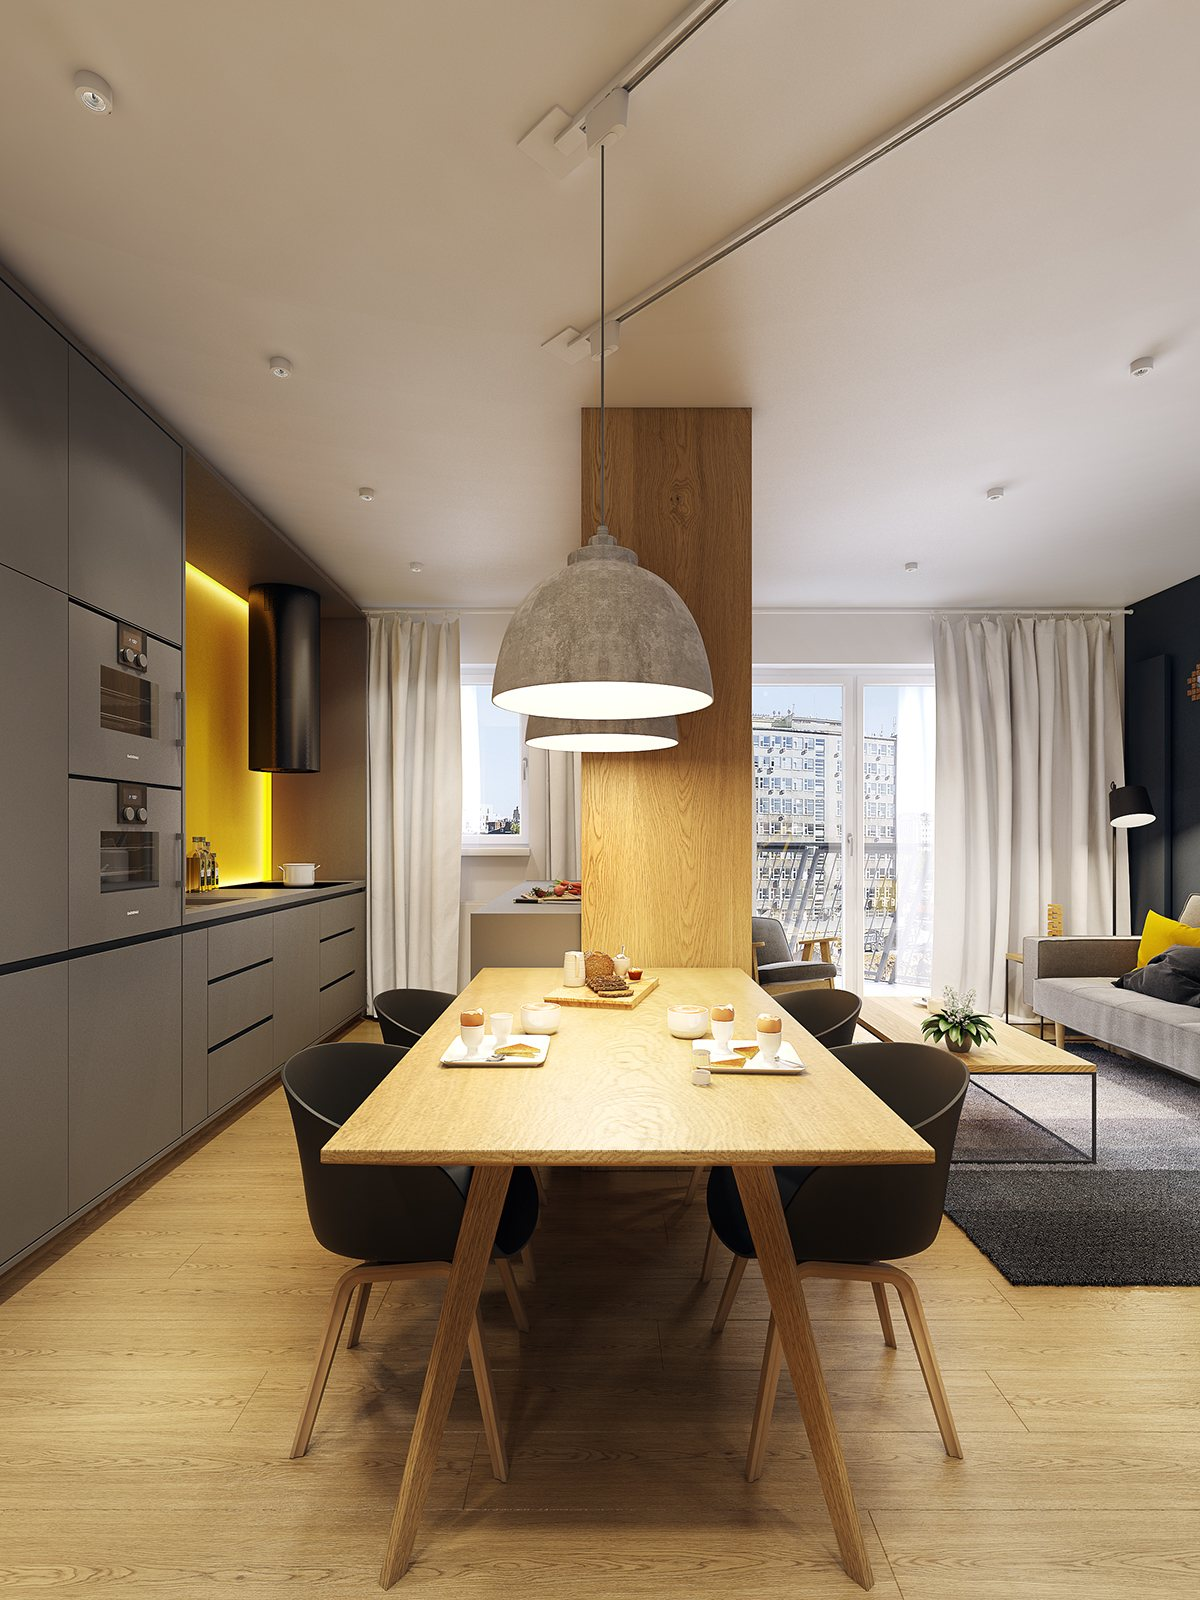 Creative Dining Room Lighting - A modern scandinavian inspired apartment with ingenius features